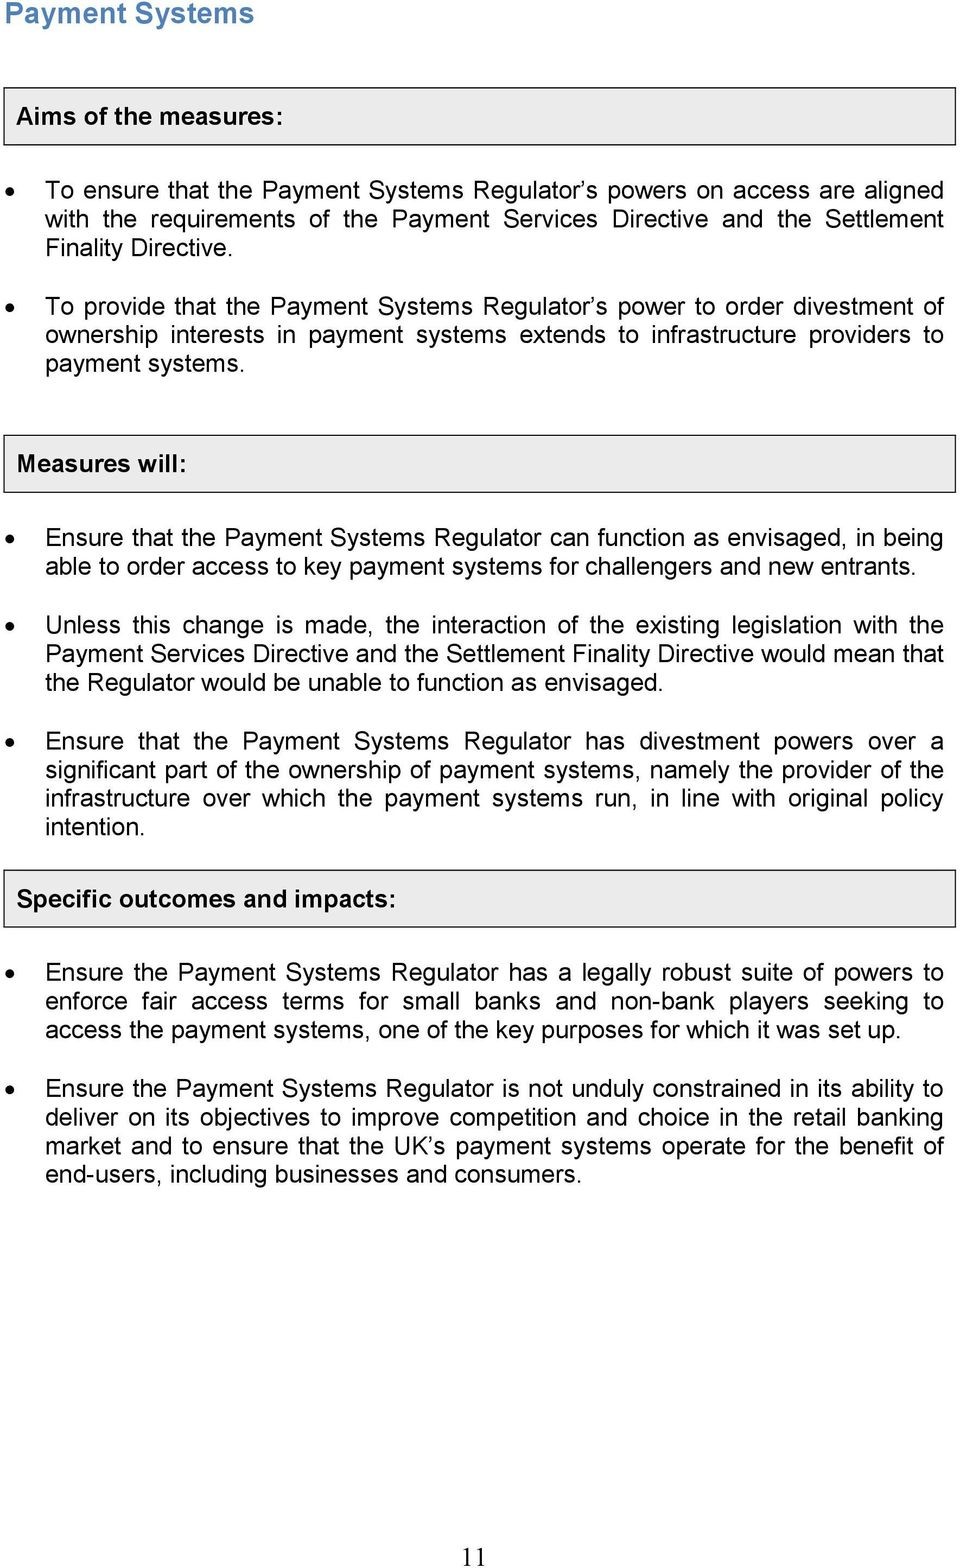 Measures will: Ensure that the Payment Systems Regulator can function as envisaged, in being able to order access to key payment systems for challengers and new entrants.